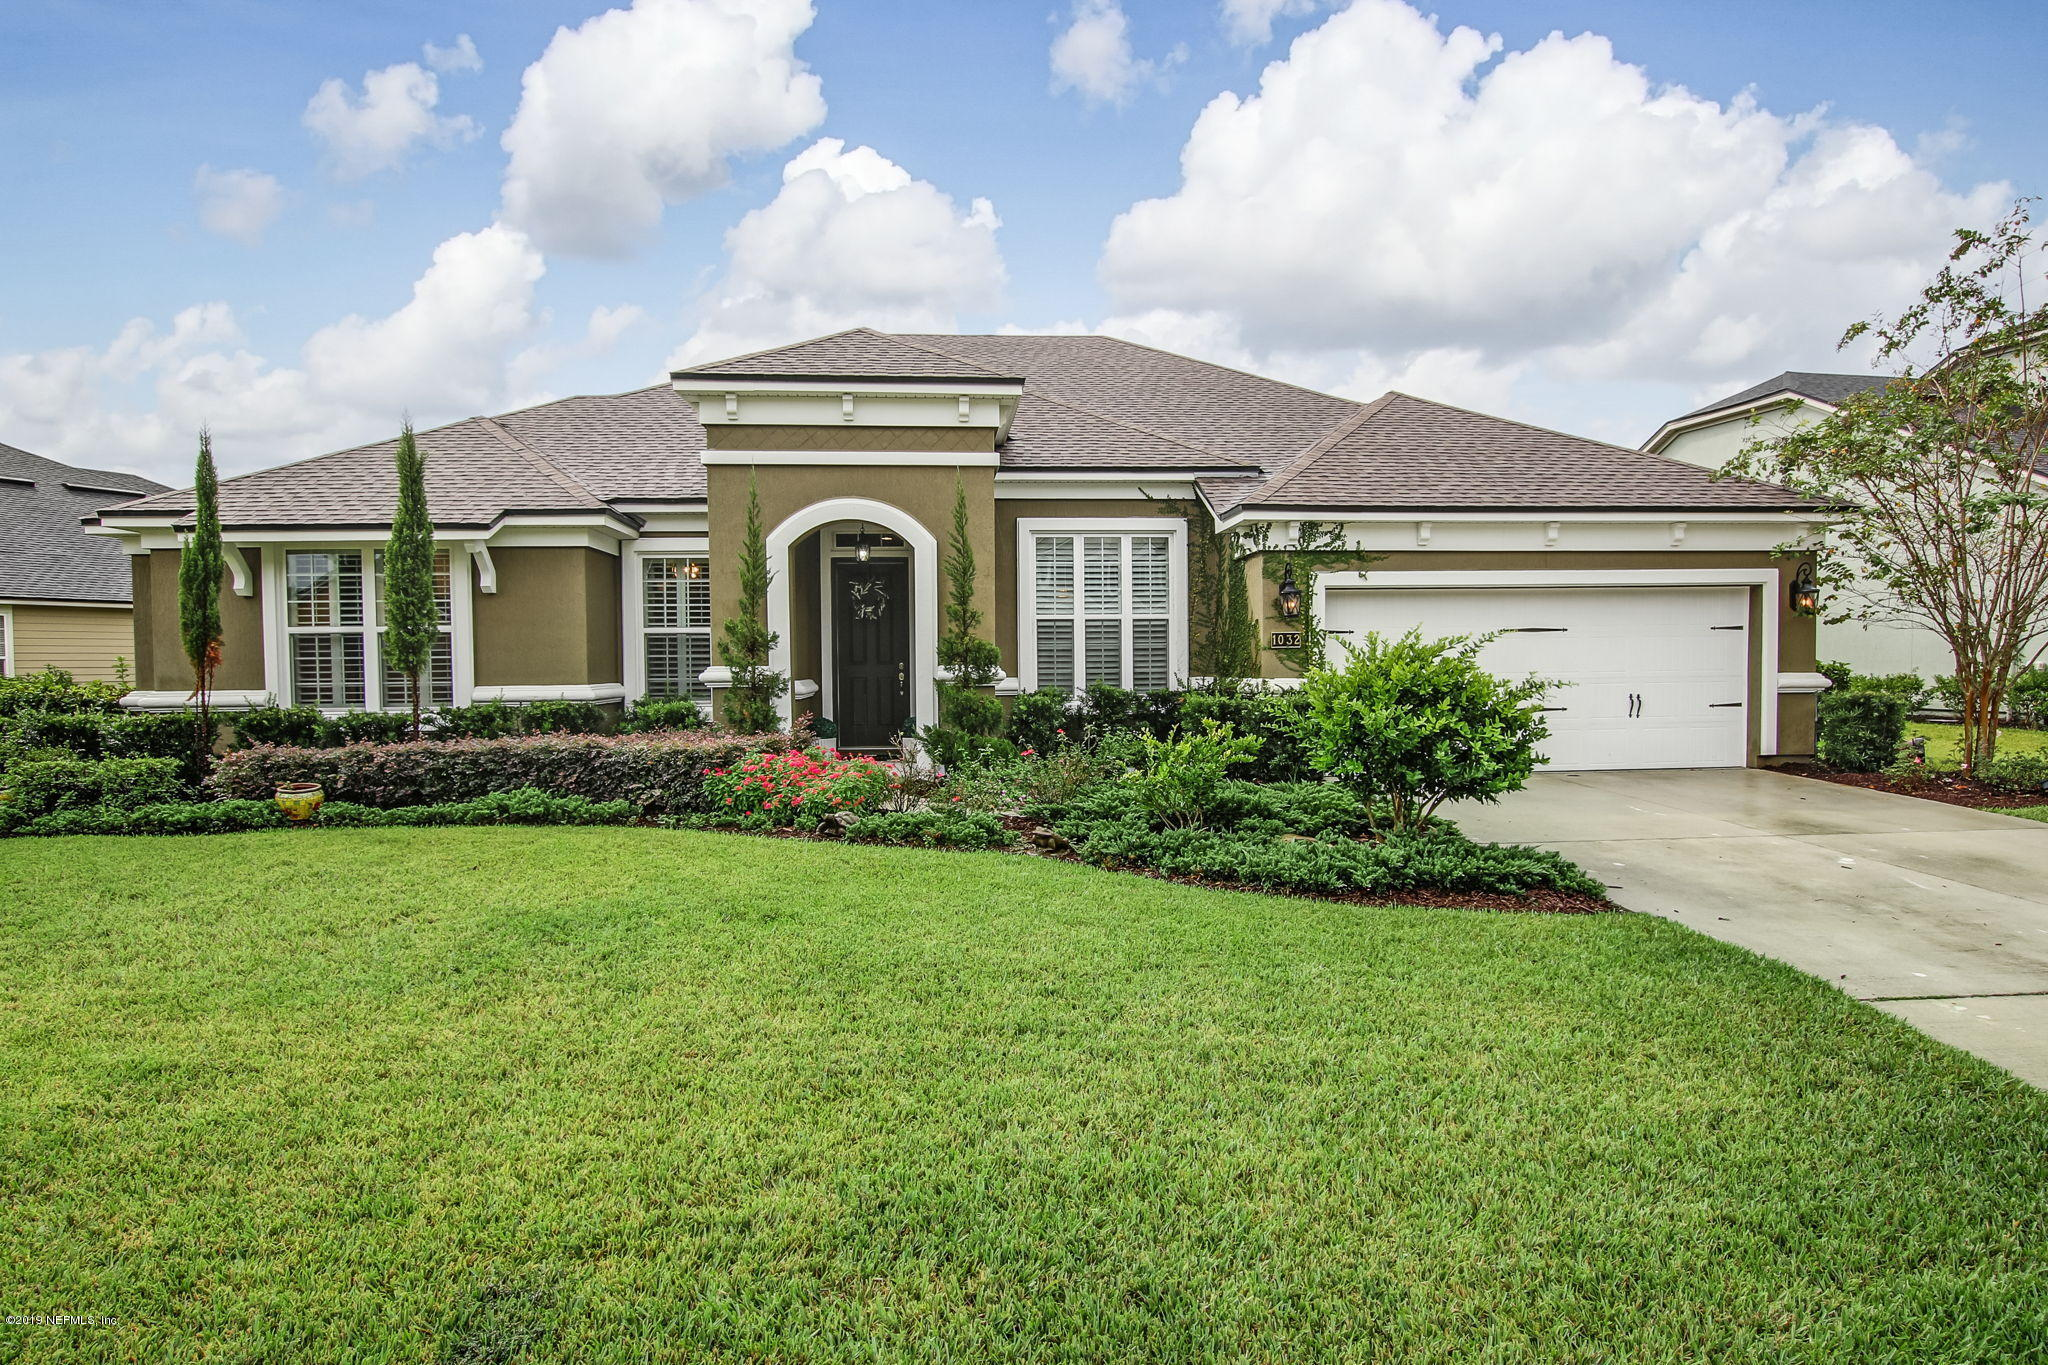 1032 SOUTHERN HILLS, ORANGE PARK, FLORIDA 32065, 4 Bedrooms Bedrooms, ,3 BathroomsBathrooms,Residential - single family,For sale,SOUTHERN HILLS,1019334